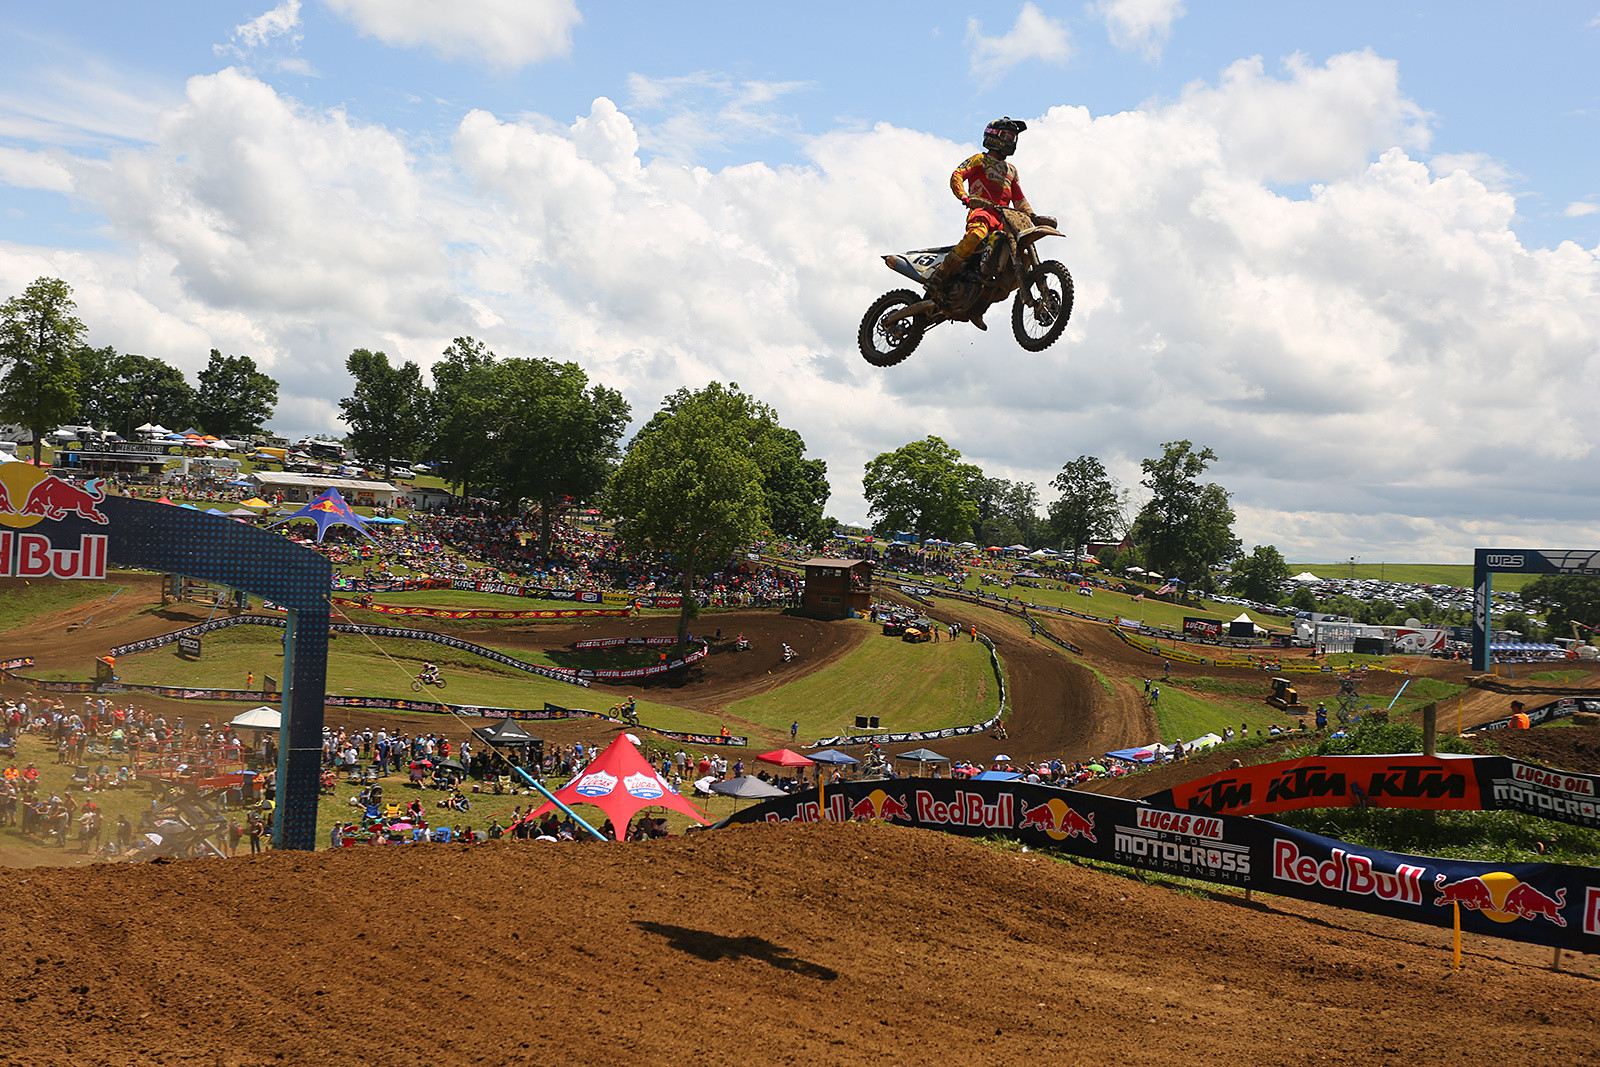 Oddly, Dean Wilson's 8-7 score nabbed him a fifth overall. Consistency pays.